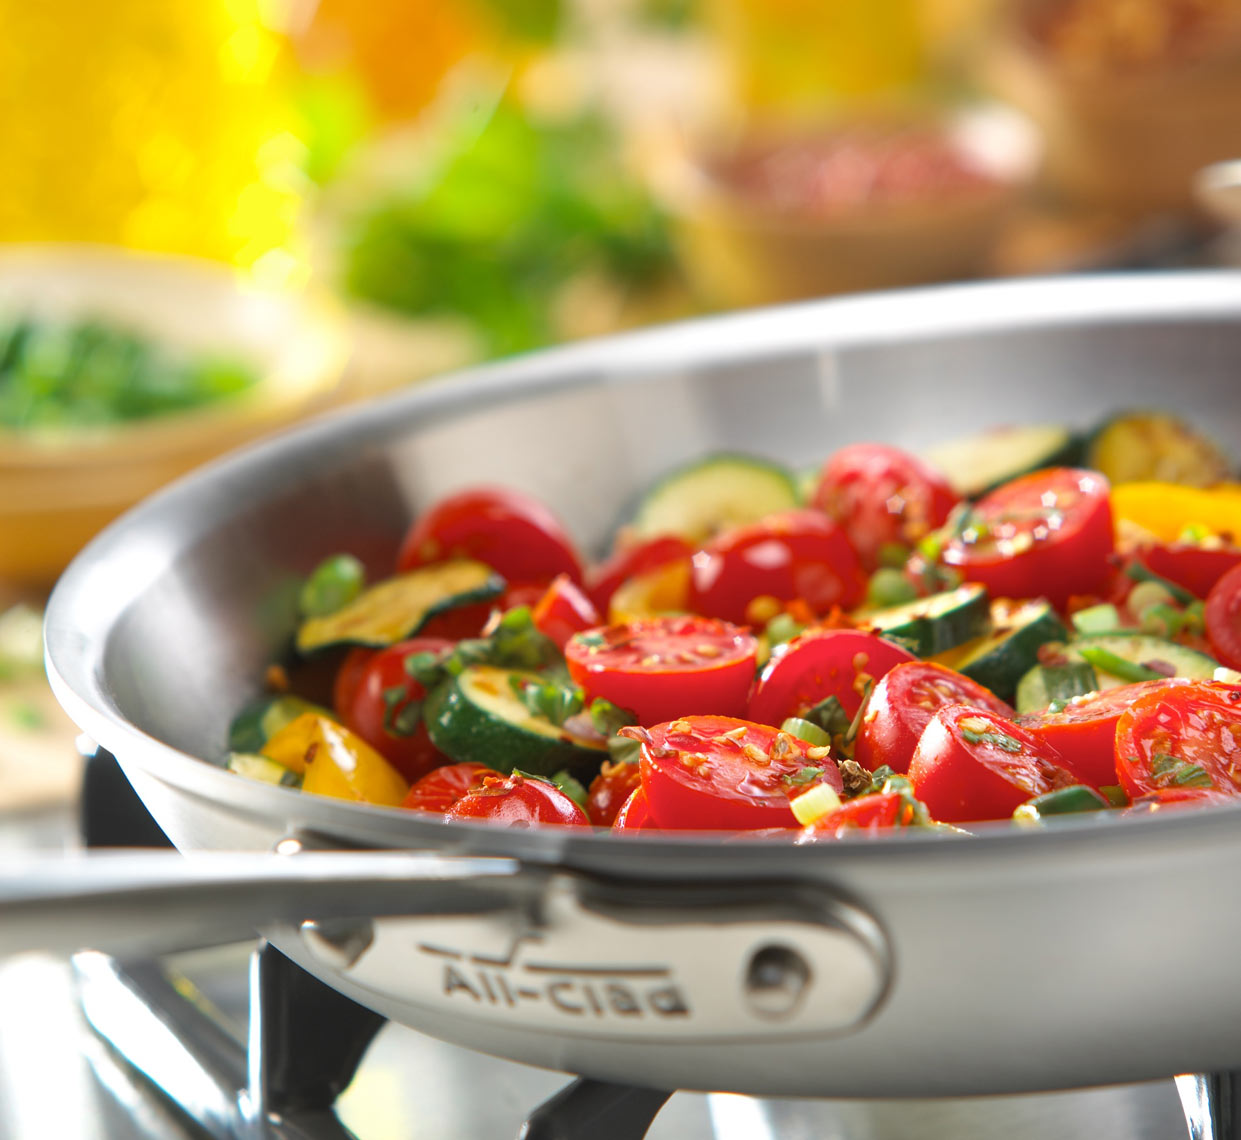 All-Clad skillet with cut tomatoes, zucchini, yellow peppers, and herbs on the stove.  Food photography, InsideOut Studios.